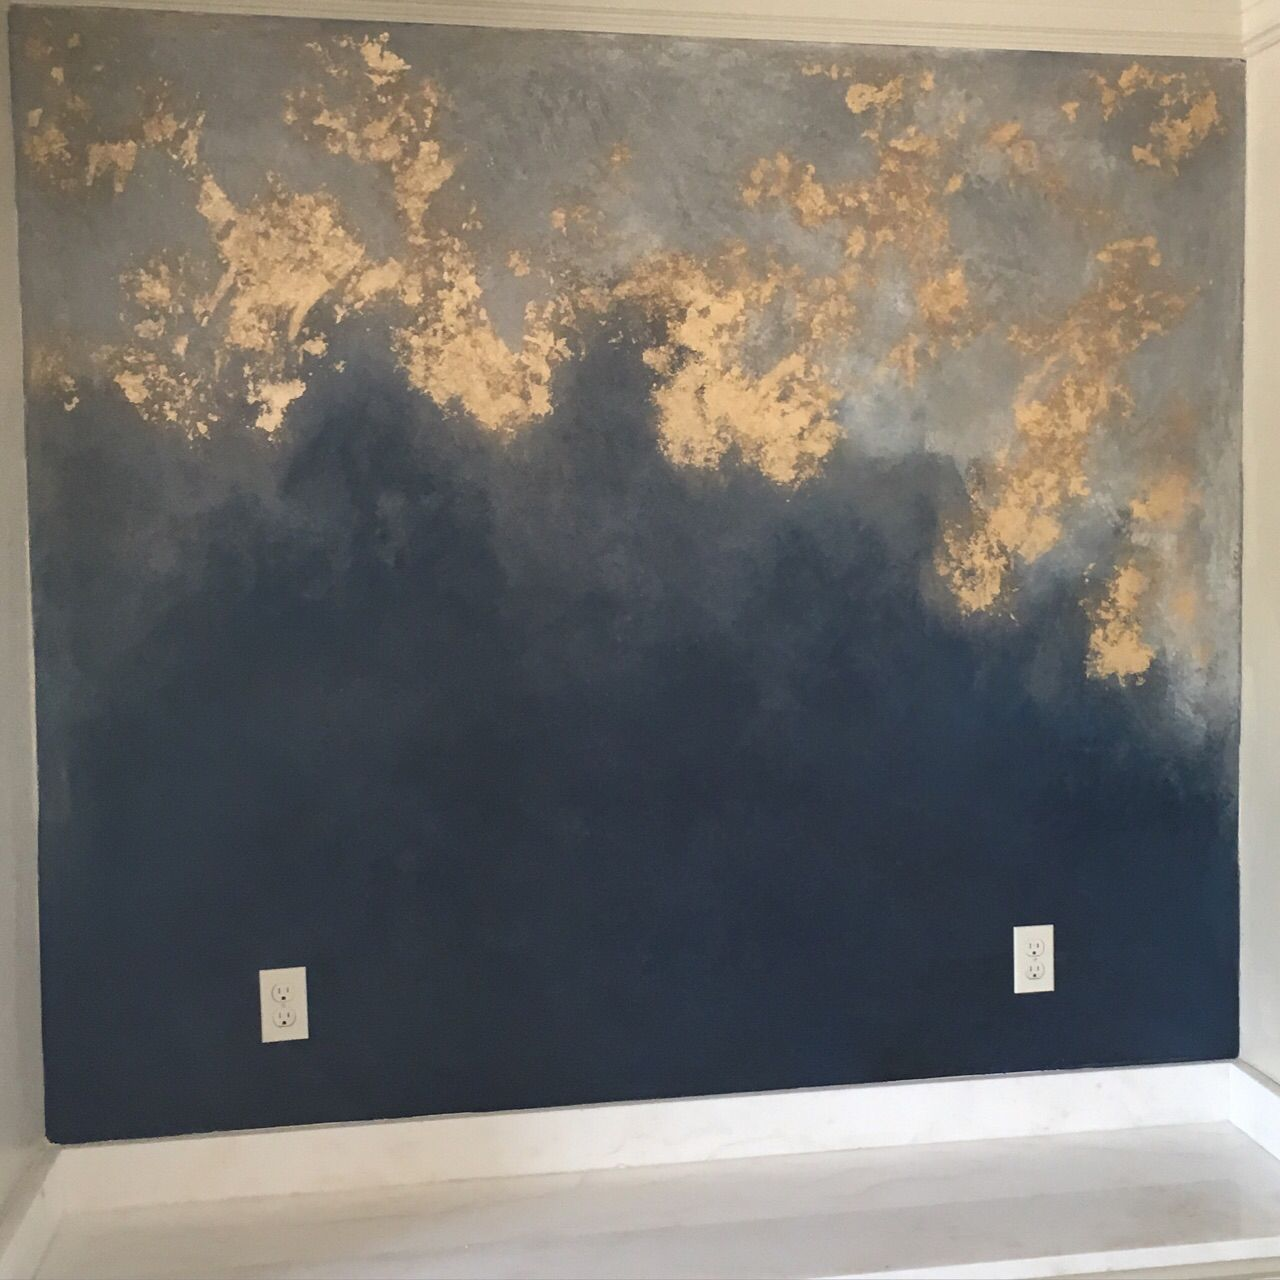 Dark Red Accent Wall With Metallic Gold: Accent Wall Metallic Plaster Gold Foil